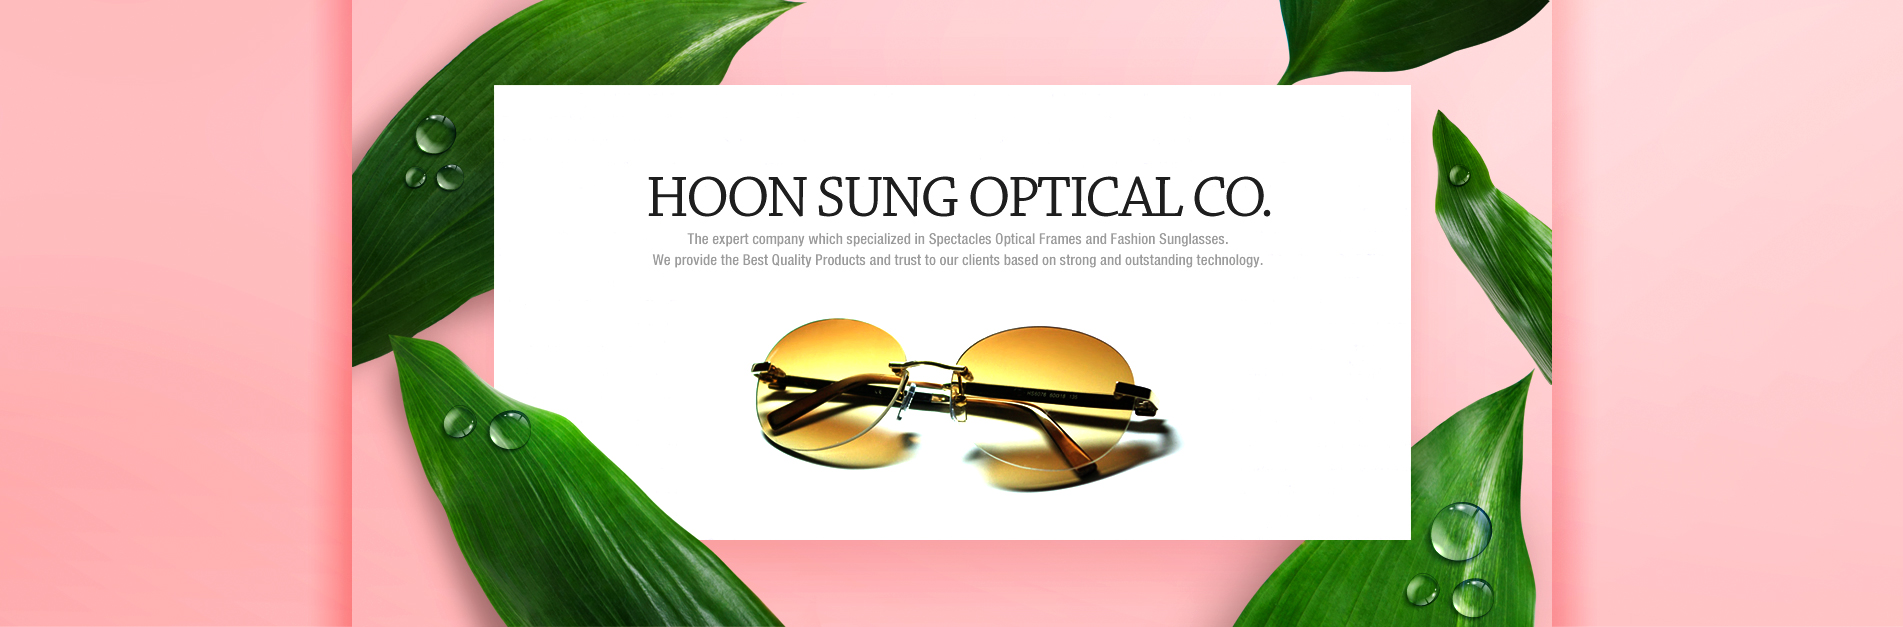 HOON SUNG OPTICAL CO. The expert company which specialized in Spectacles Optical Frames and Fashion Sunglasses.We provide the Best Quality Products and trust to our clients based on strong and outstanding technology.